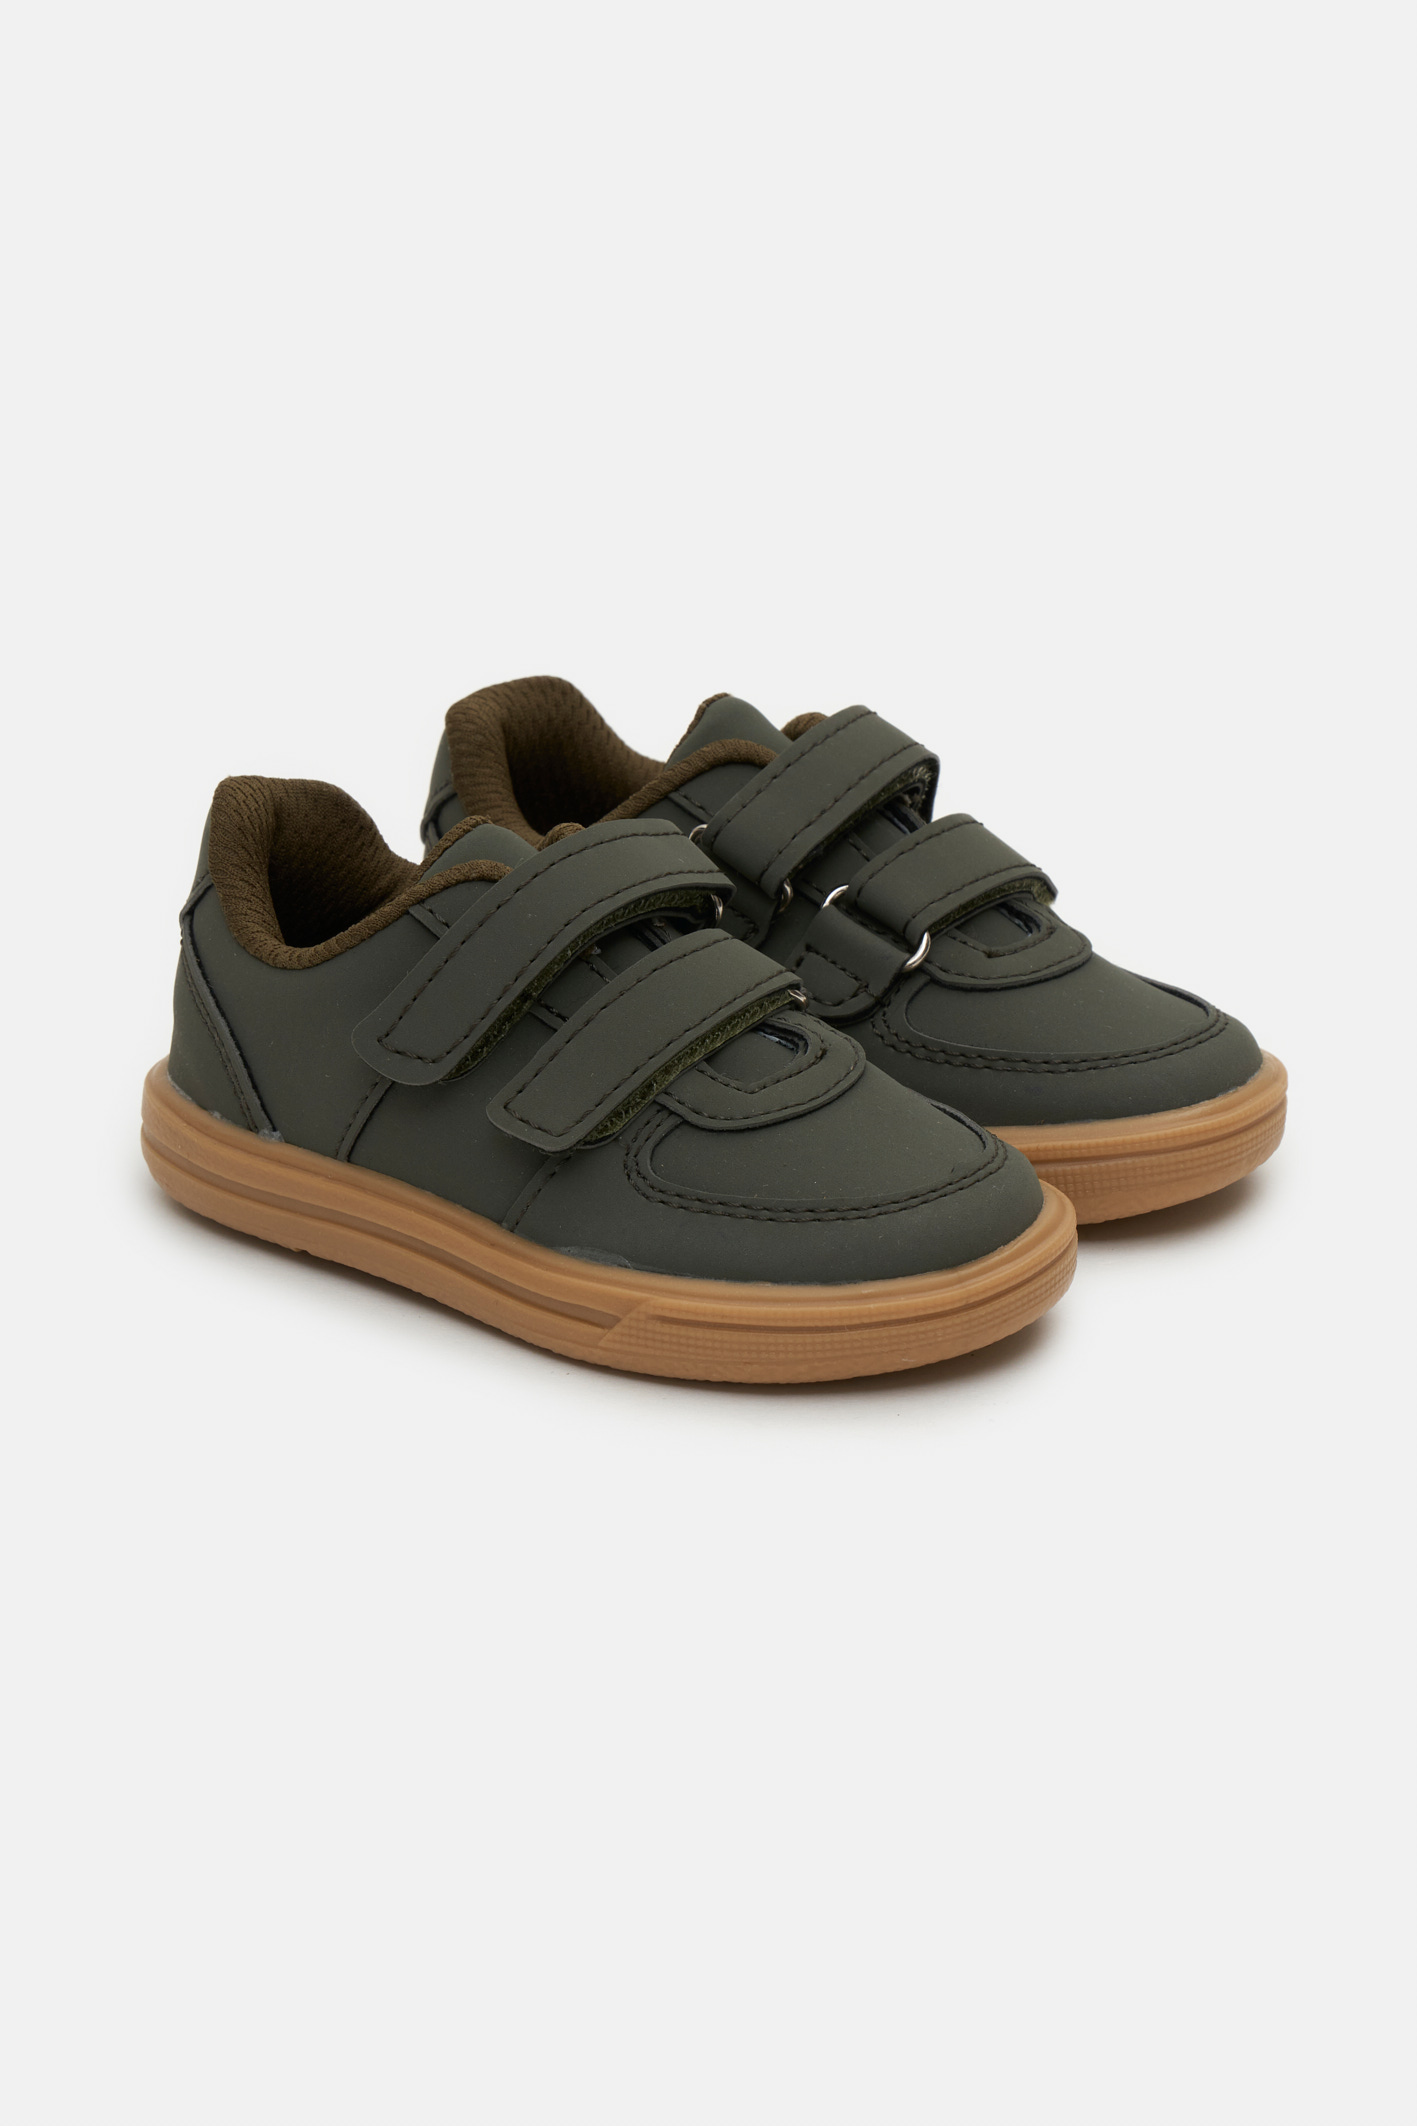 cheeky_zapatillas-clyde-21-24_36-25-2021__picture-82966